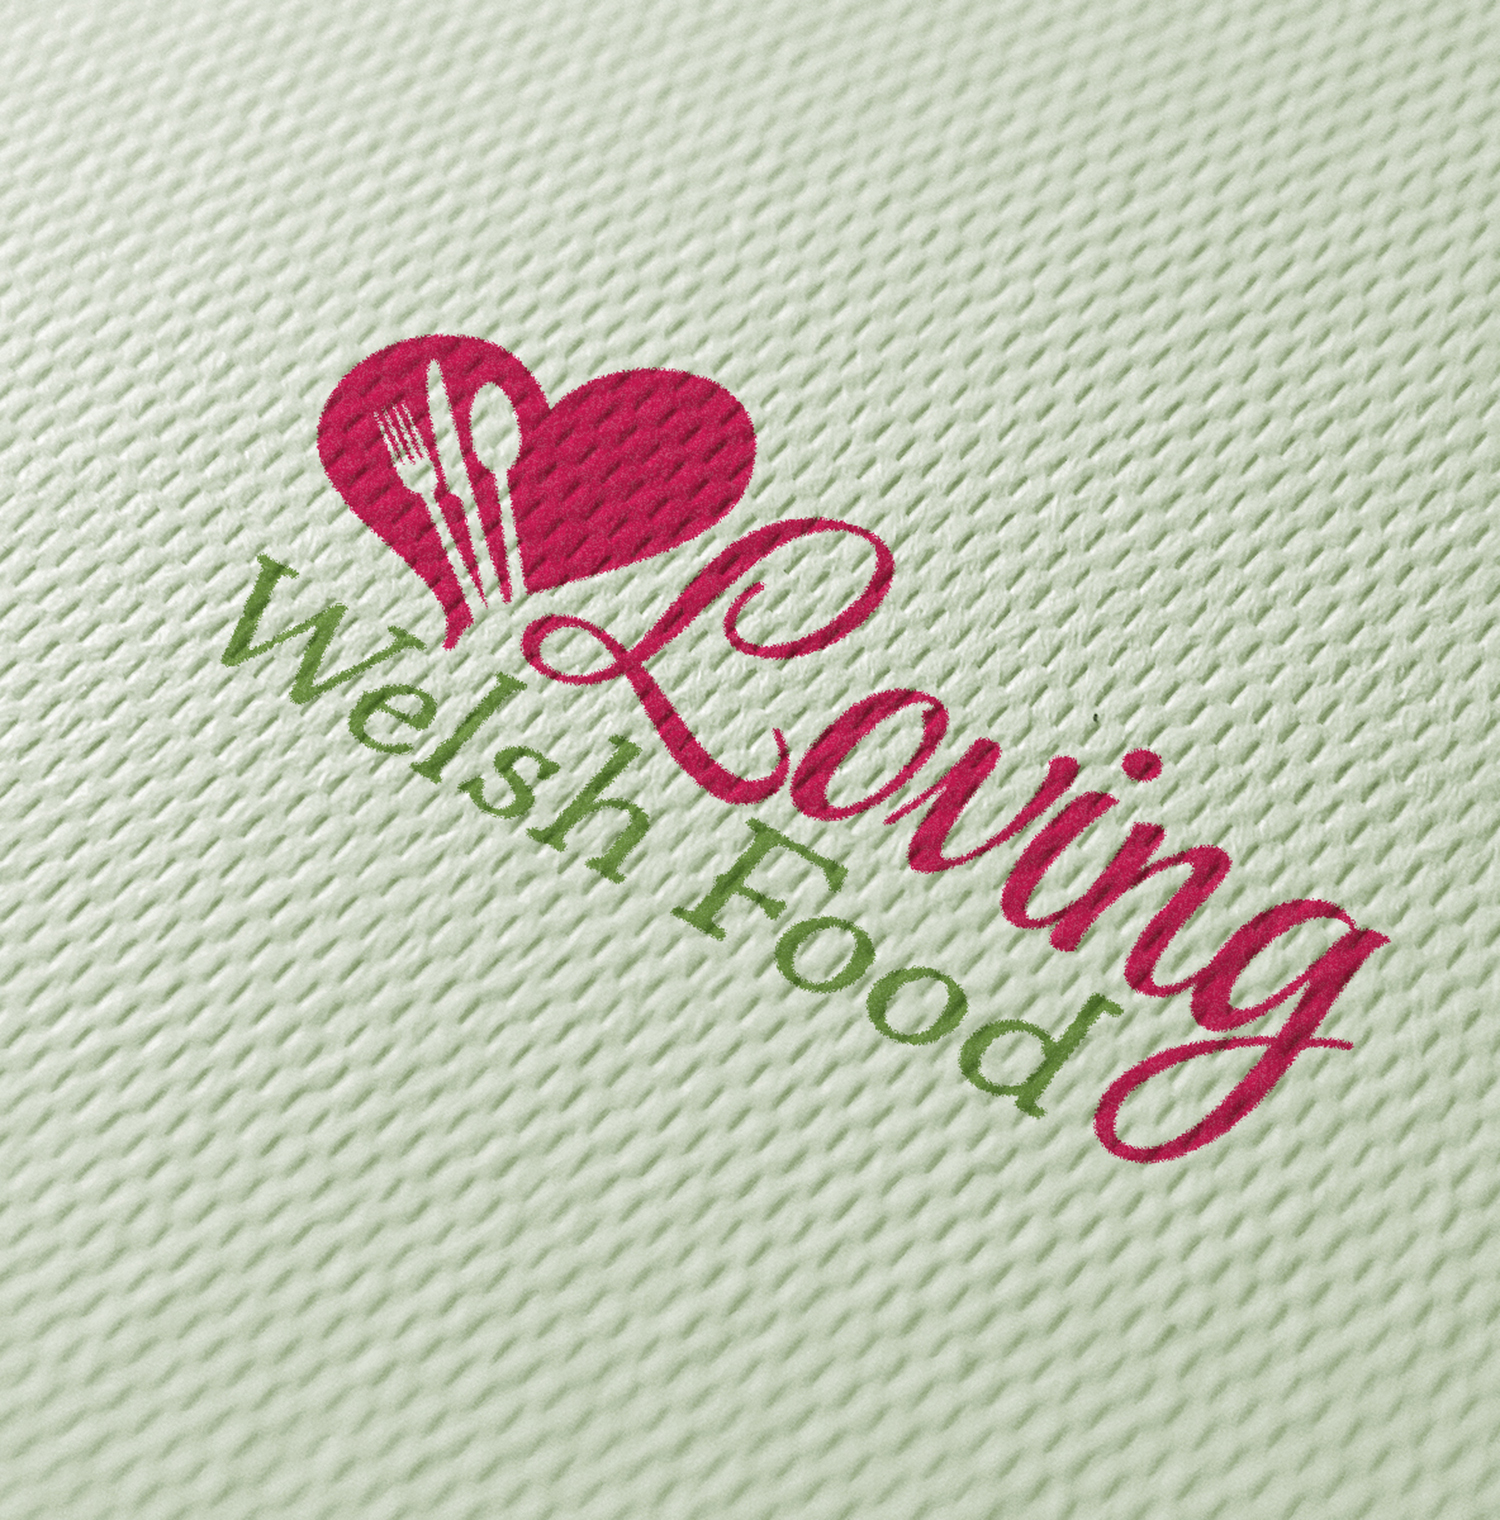 Loving Welsh Food logo texture 720